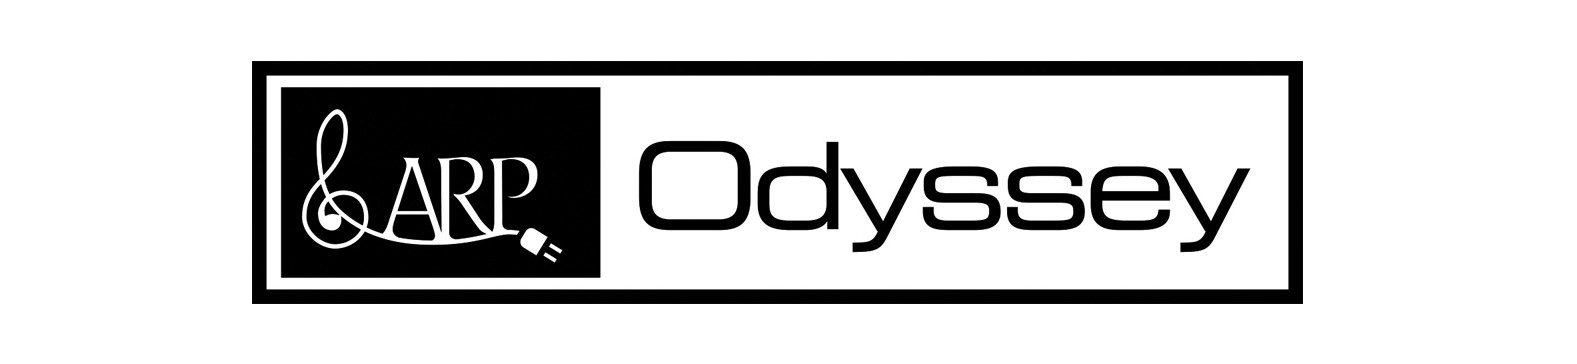 Nieuws | KORG announces the development of an all new ARP Odyssey  synthesizer. | KORG (The Netherlands)